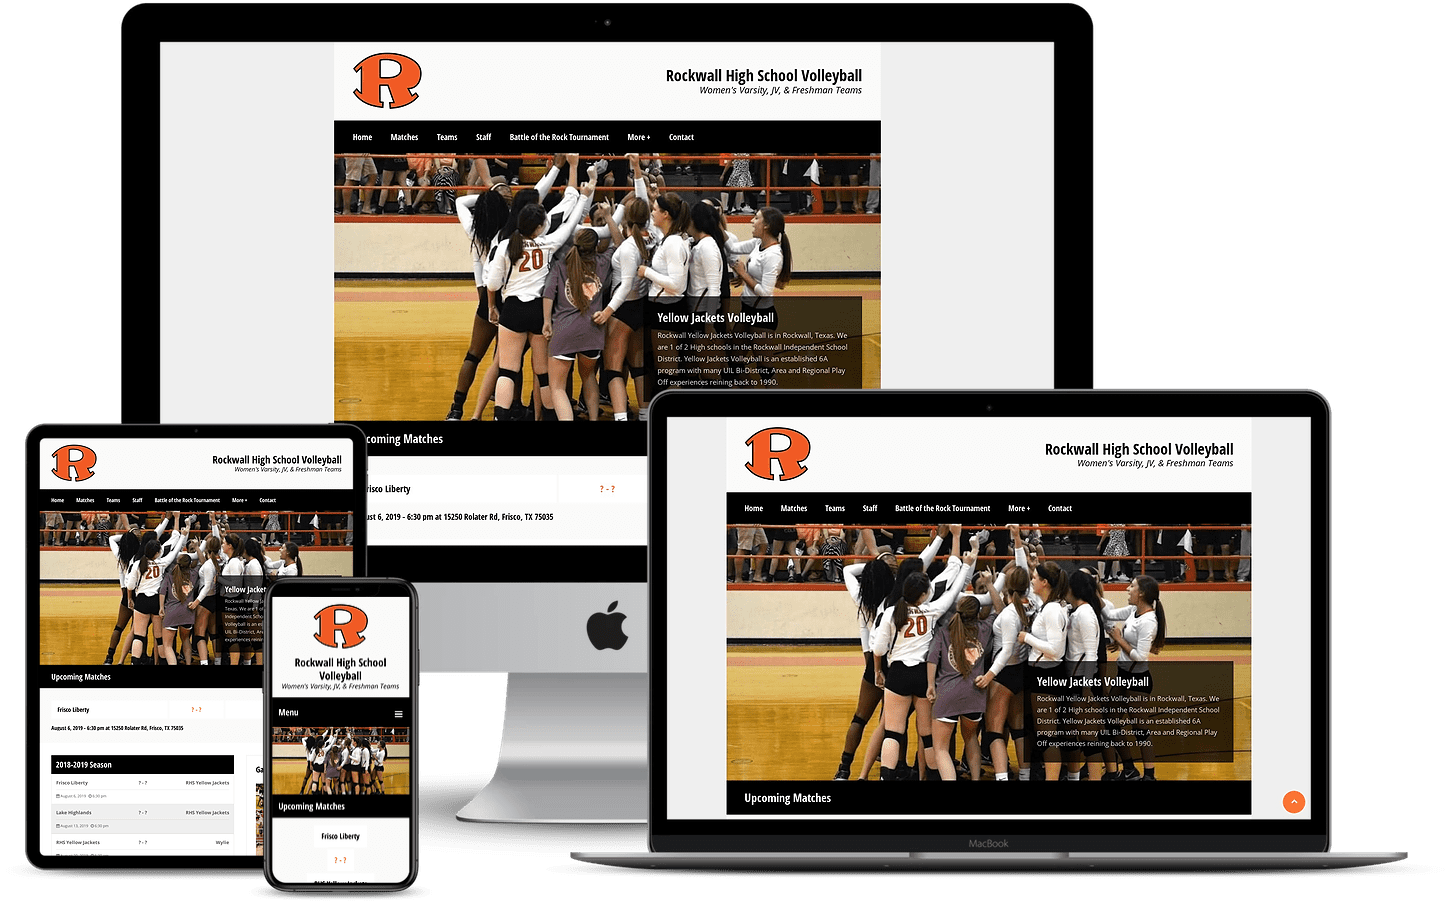 Rockwall High School Volleyball Team website mockup for rockwallhsvolleyball.com